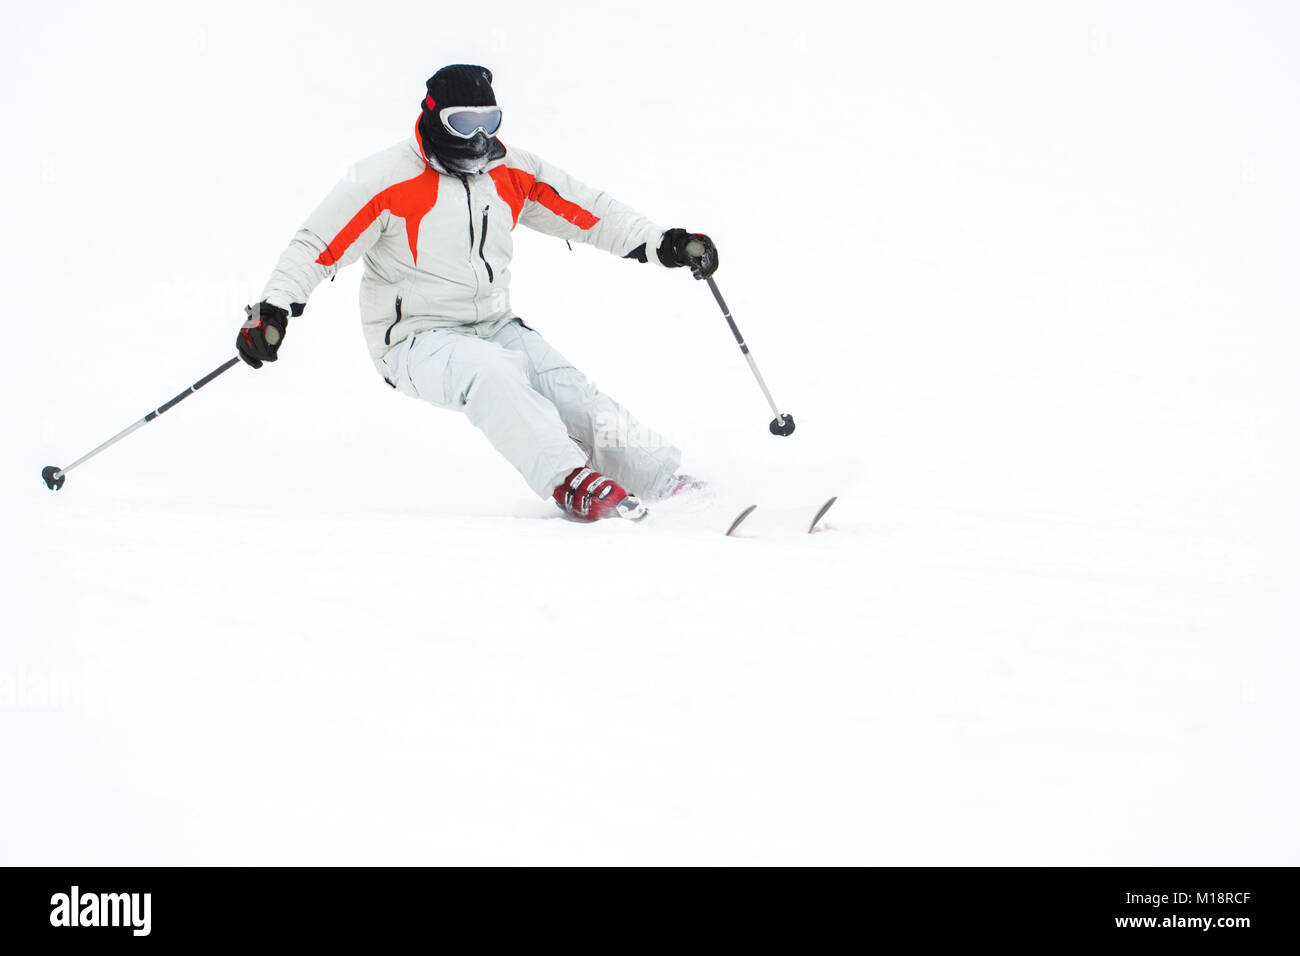 Alpine skier skiing downhill over white snow background - Stock Image